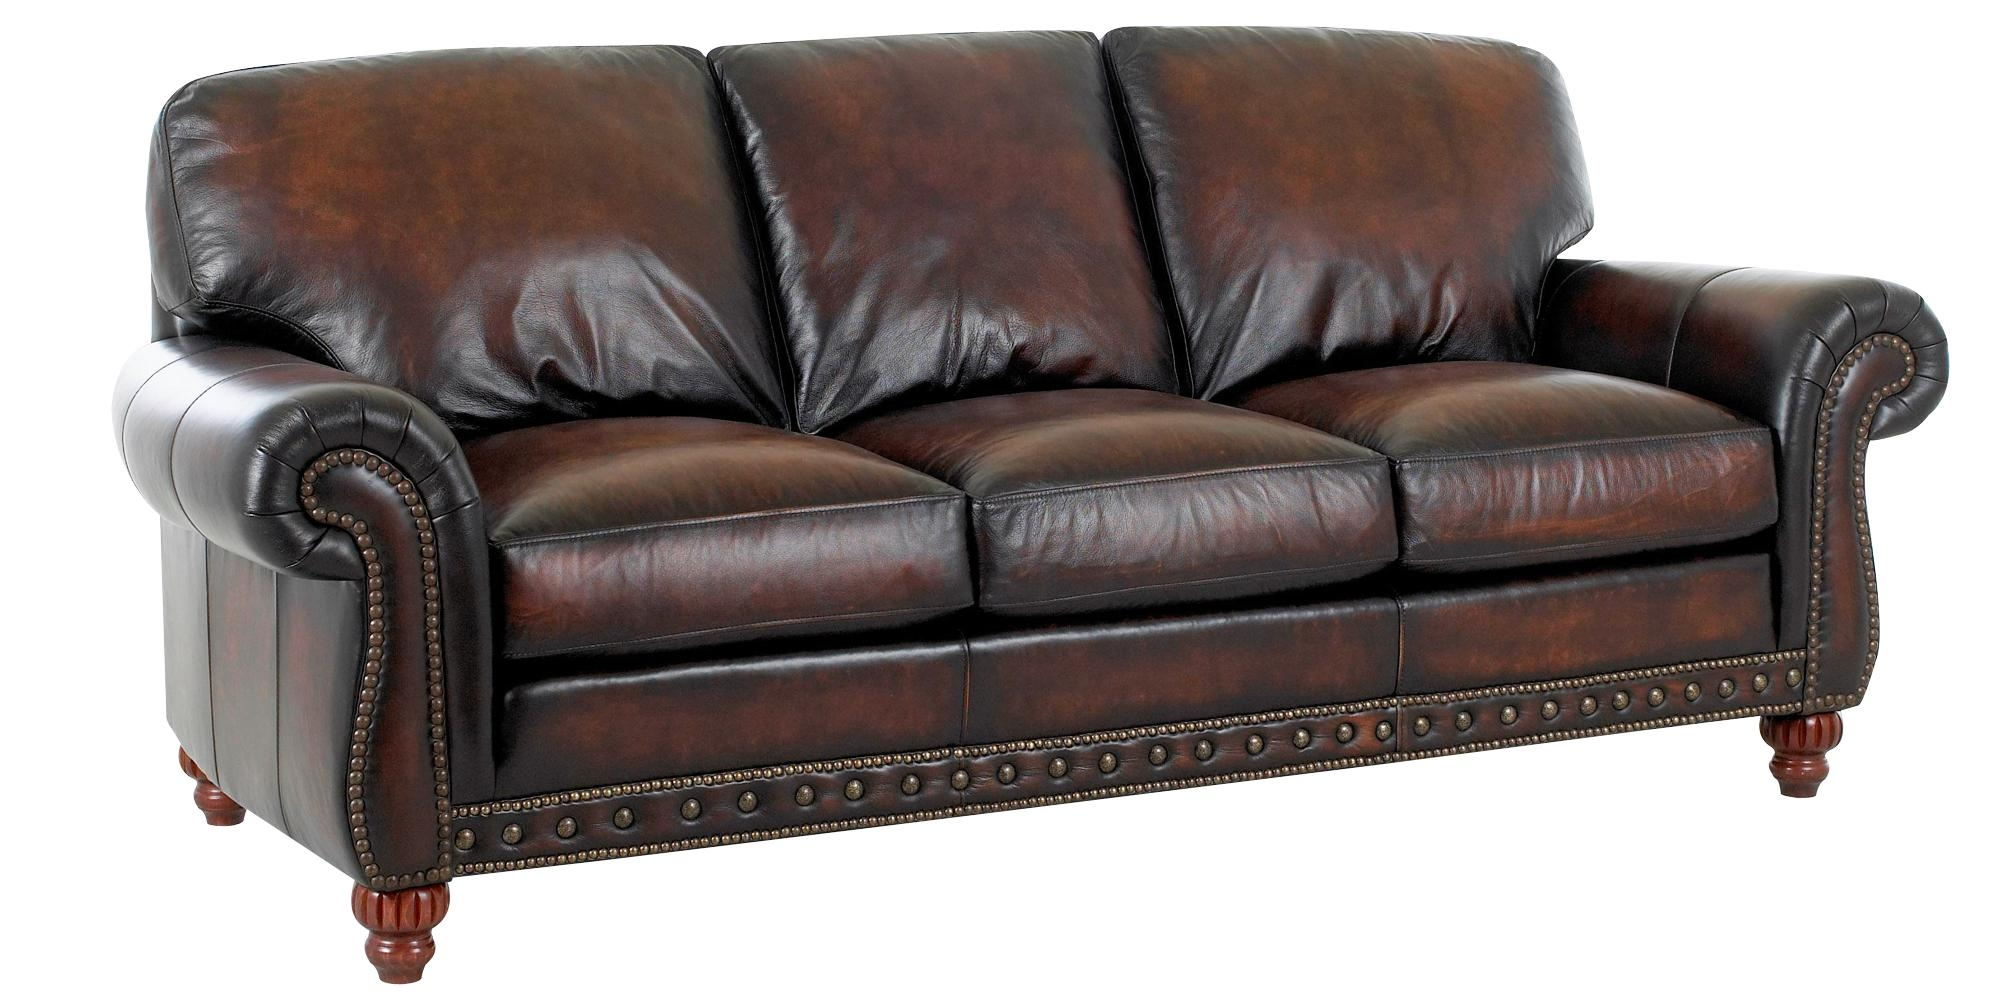 Traditional European Old World Leather Sofa Set | Club Furniture In European Leather Sofas (Image 19 of 21)